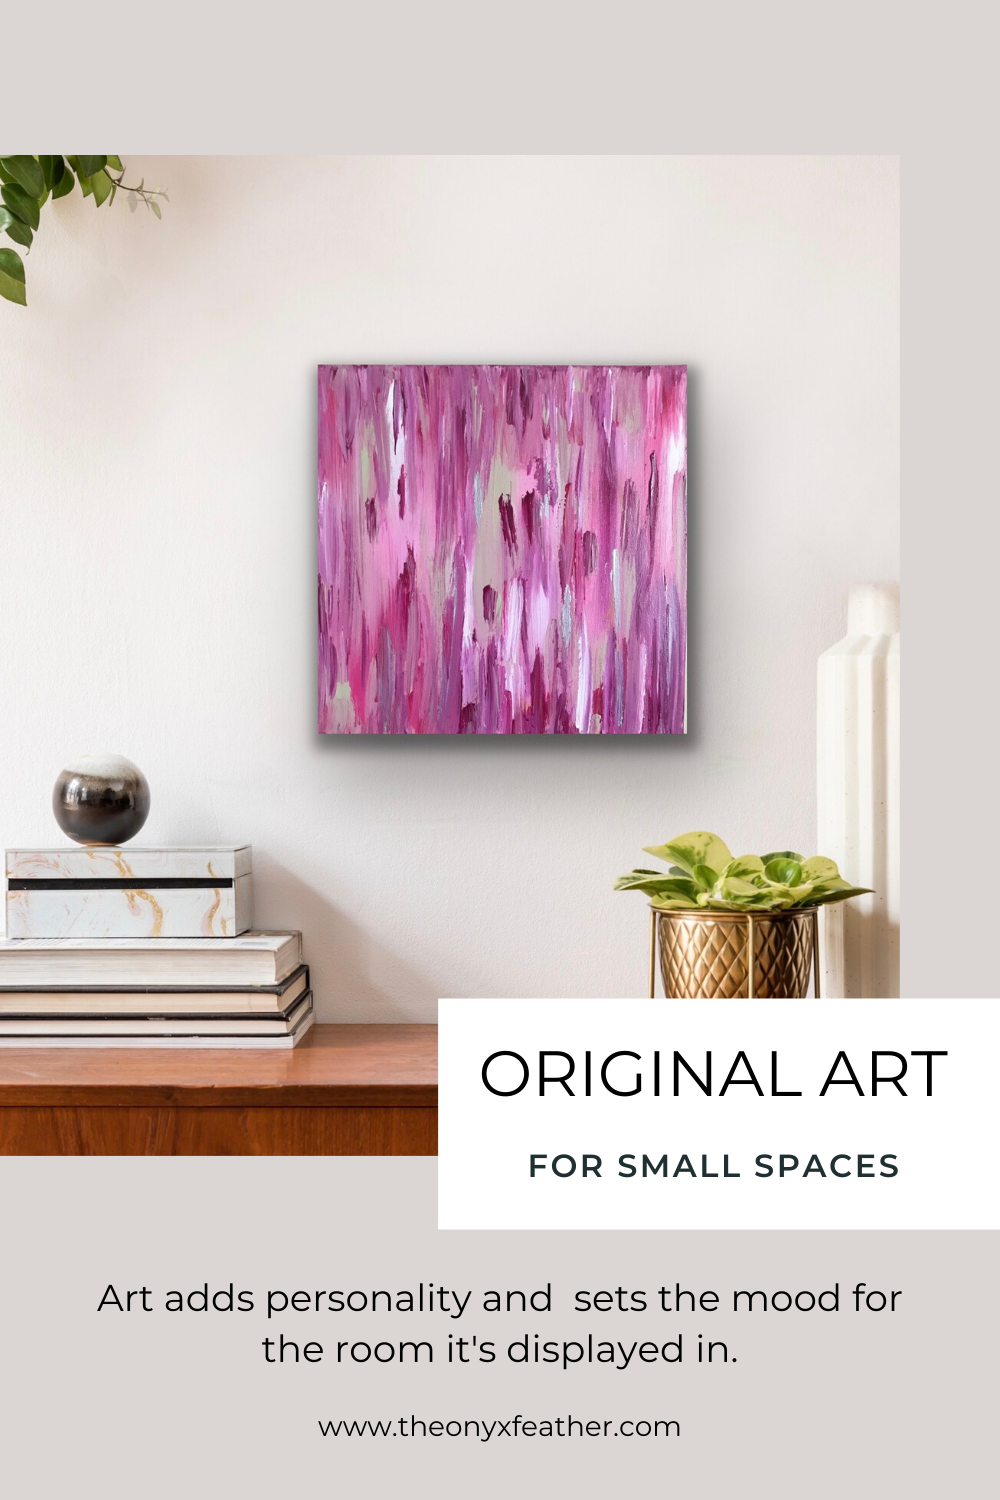 Create a beautiful story to your life's journey with art. Seek art that feels your soul with joy and builds a story through your adventures that are good enough to share over a glass of wine with your friends.  #paintingsforsale #artforsale #madeinkc #artforthesoul #artforthehome #kcartist #abstractart #abstractpainting #emergingartist #acrylicsoncanvas #acrylicart #homedecor #originalart #selftaughtartist #wallpaintings #spiritualjourney #bohodecoration #mybohoabode #modernbohomenian